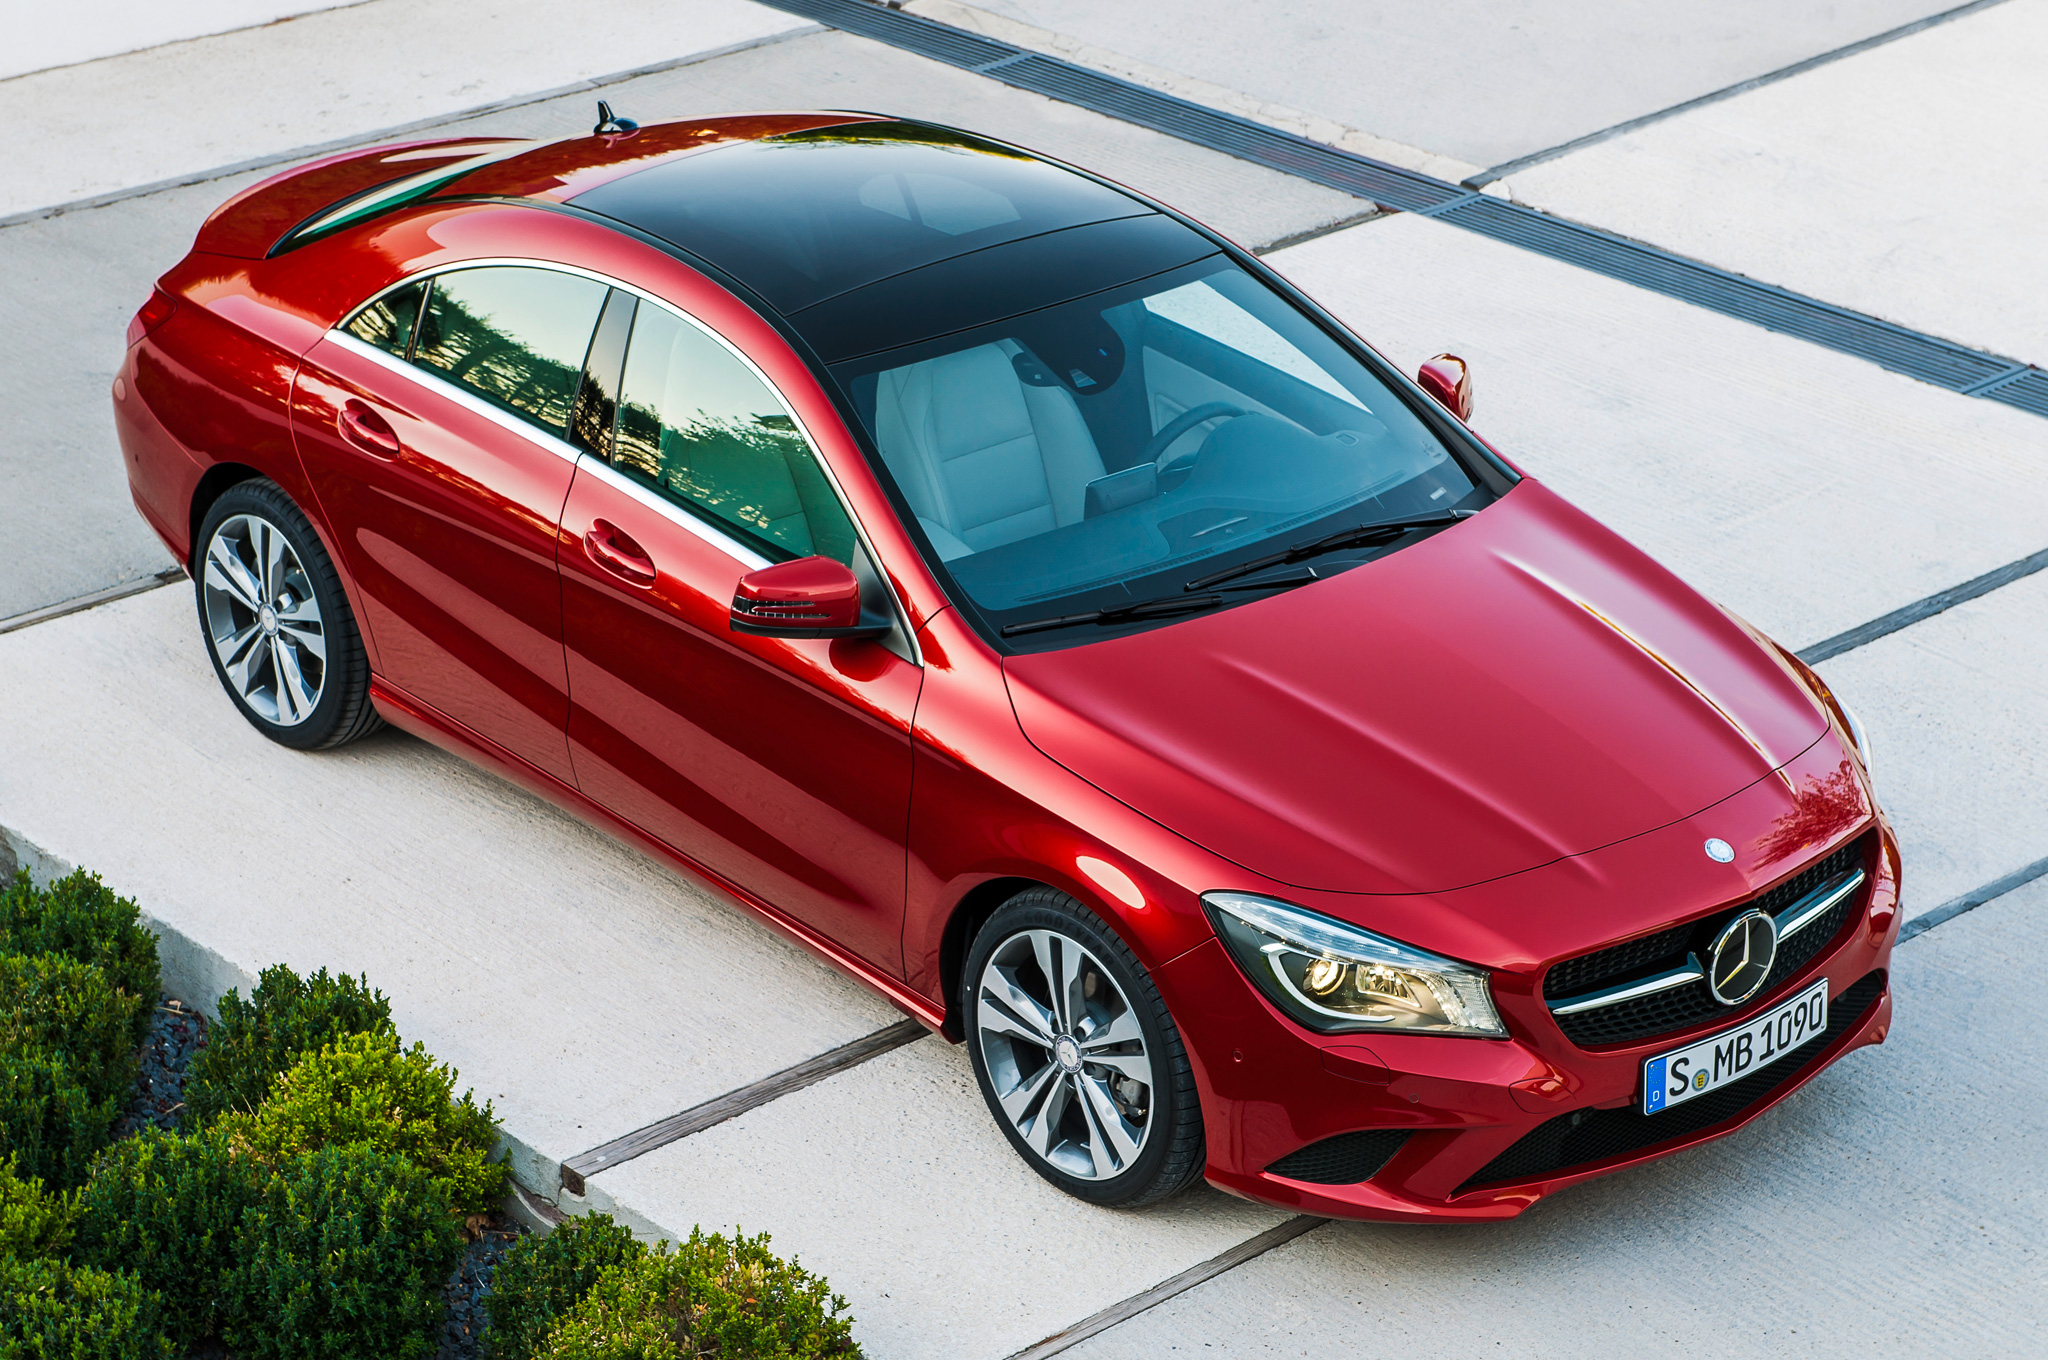 2014 Mercedes-Benz CLA250 EPA-Rated at 26/38 MPG - MotorTrend